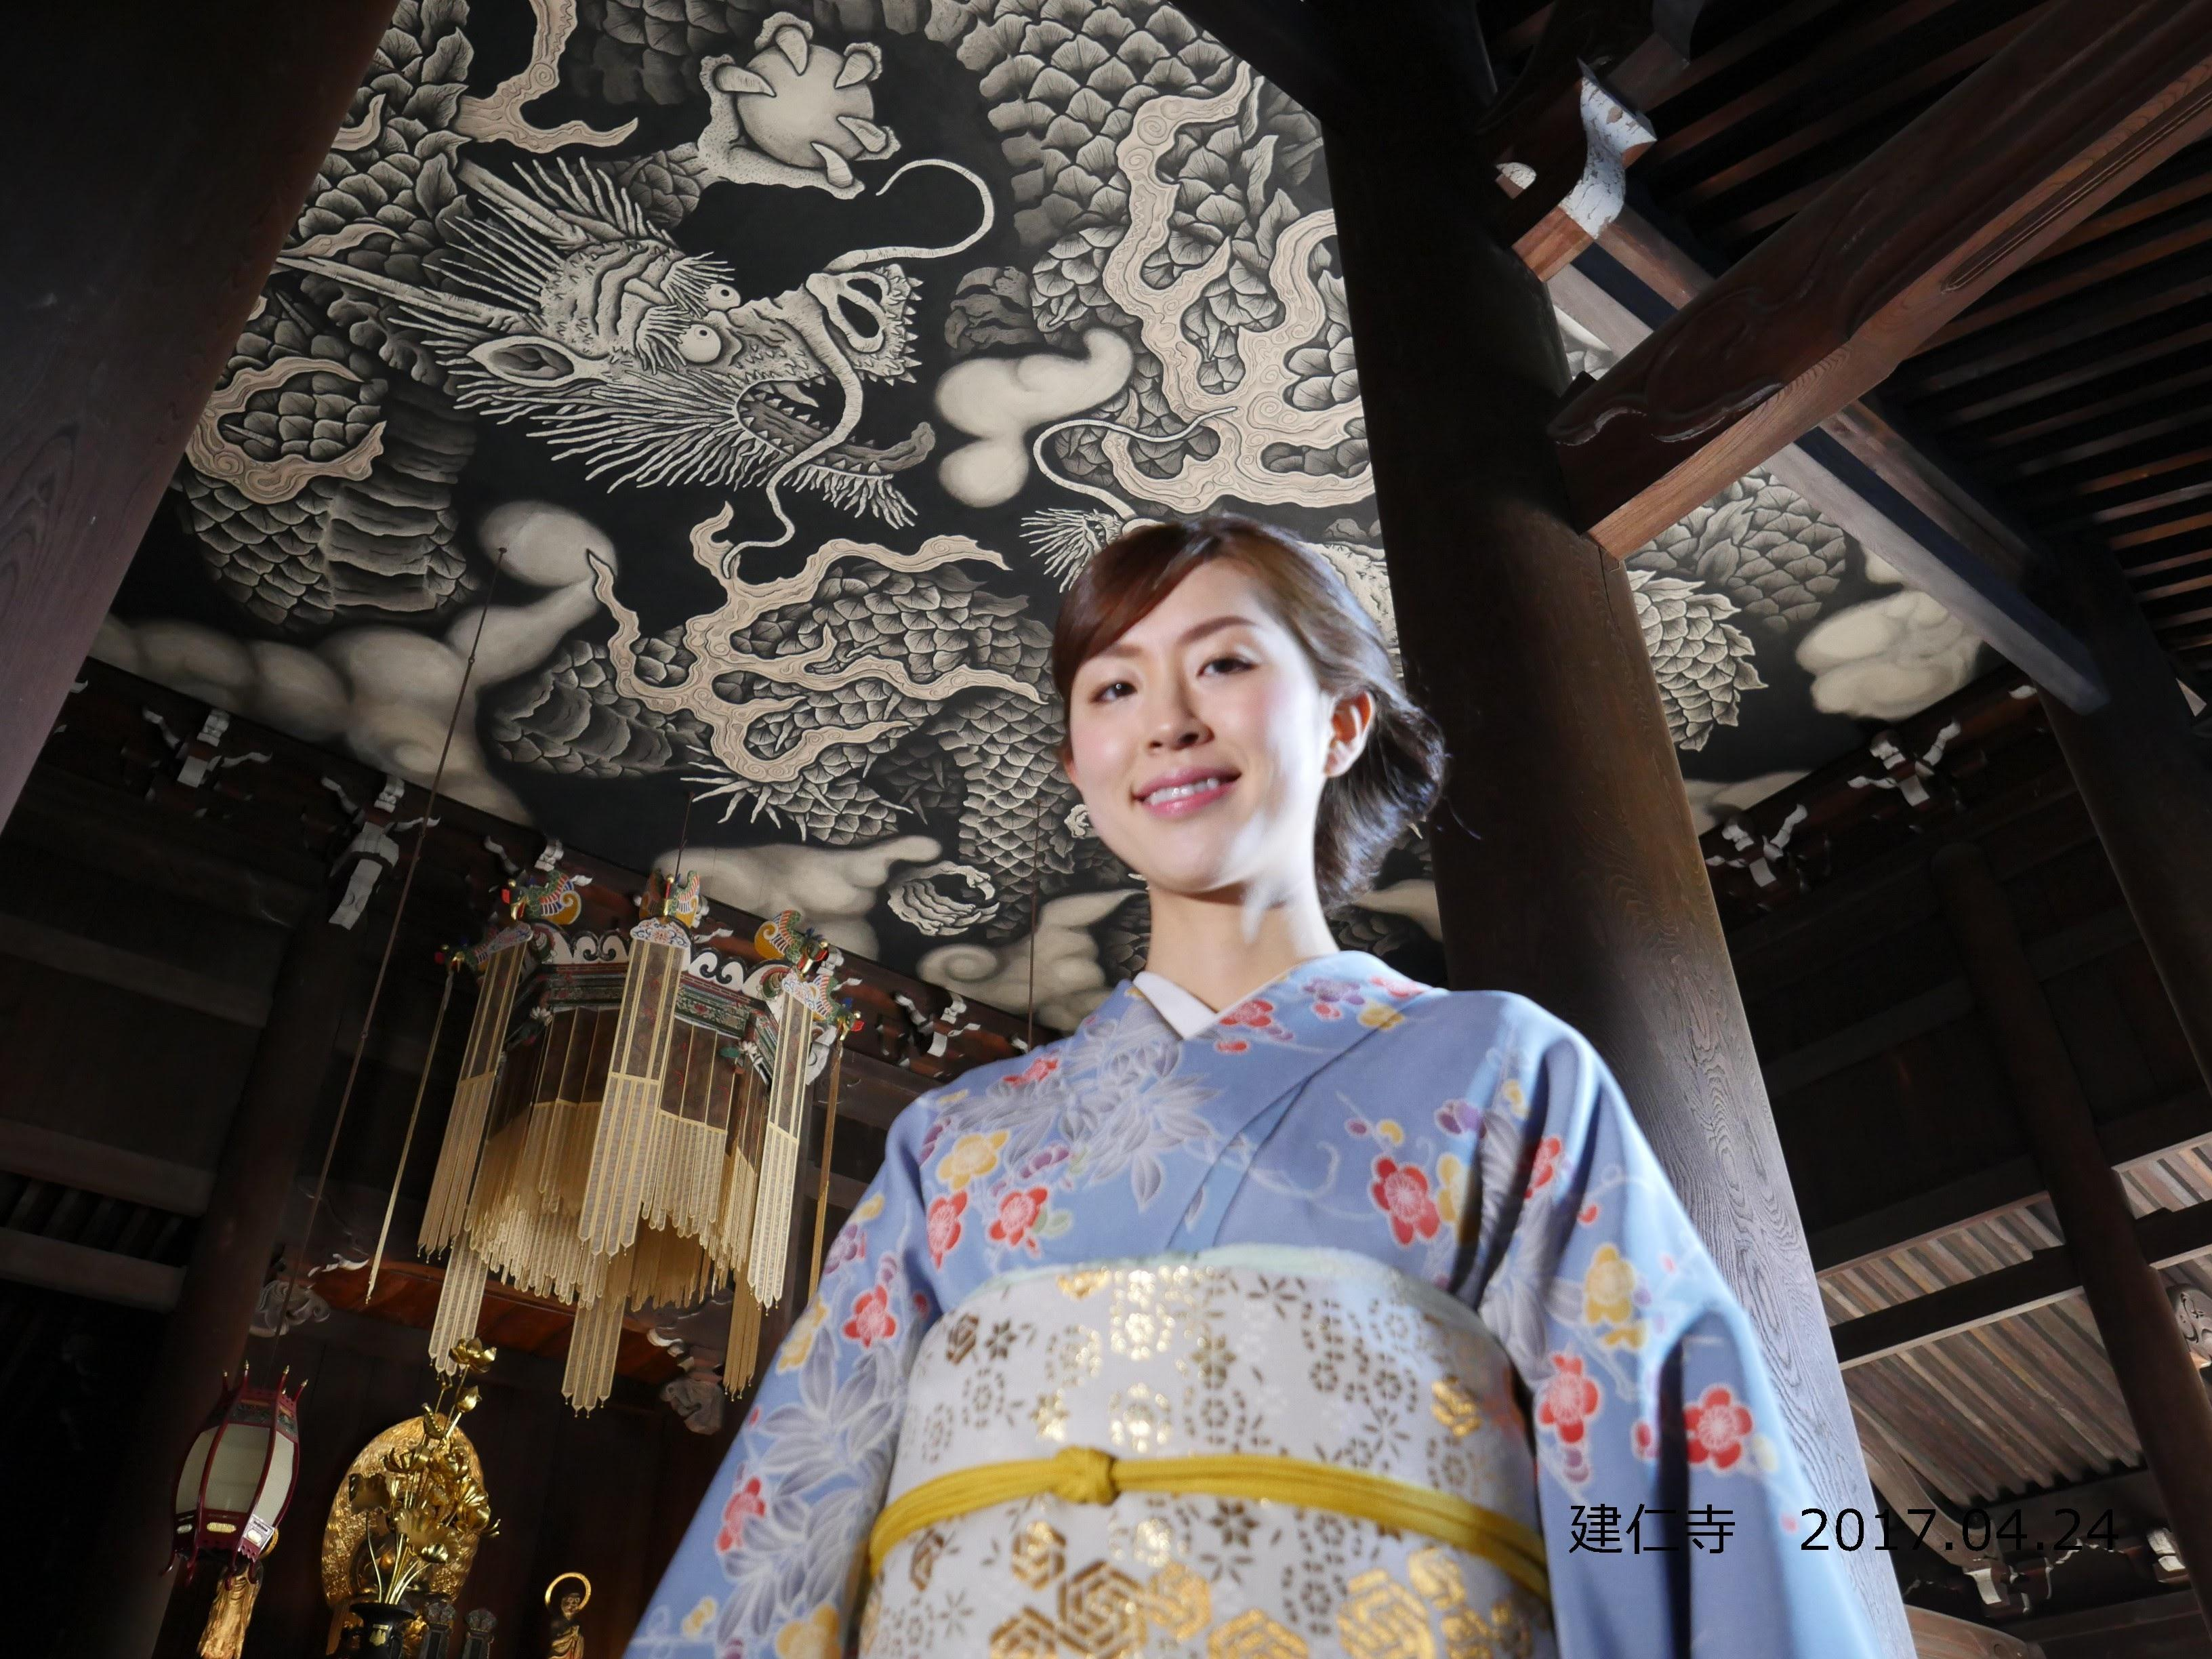 Camera Sharing Service PaN at Two Temples in Kyoto for Limited Time